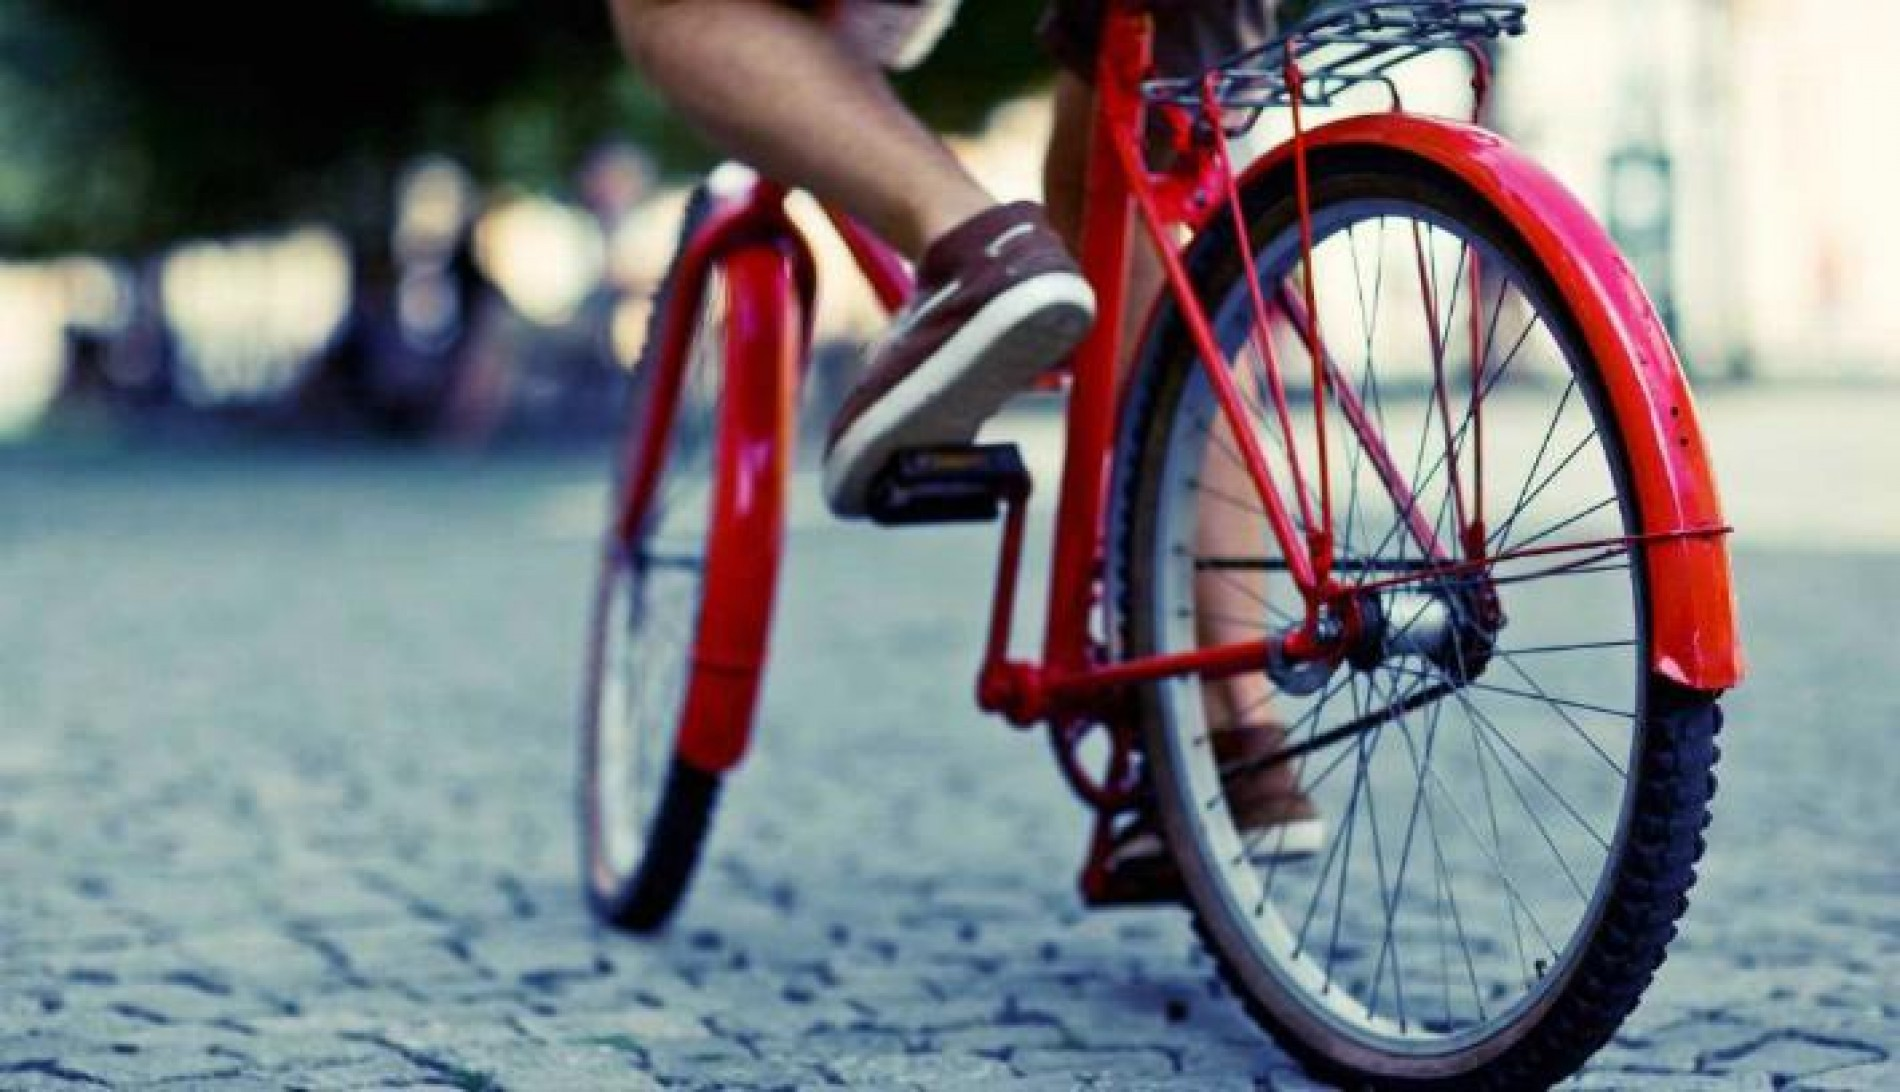 Pedala la bici italiana: record di export in UE